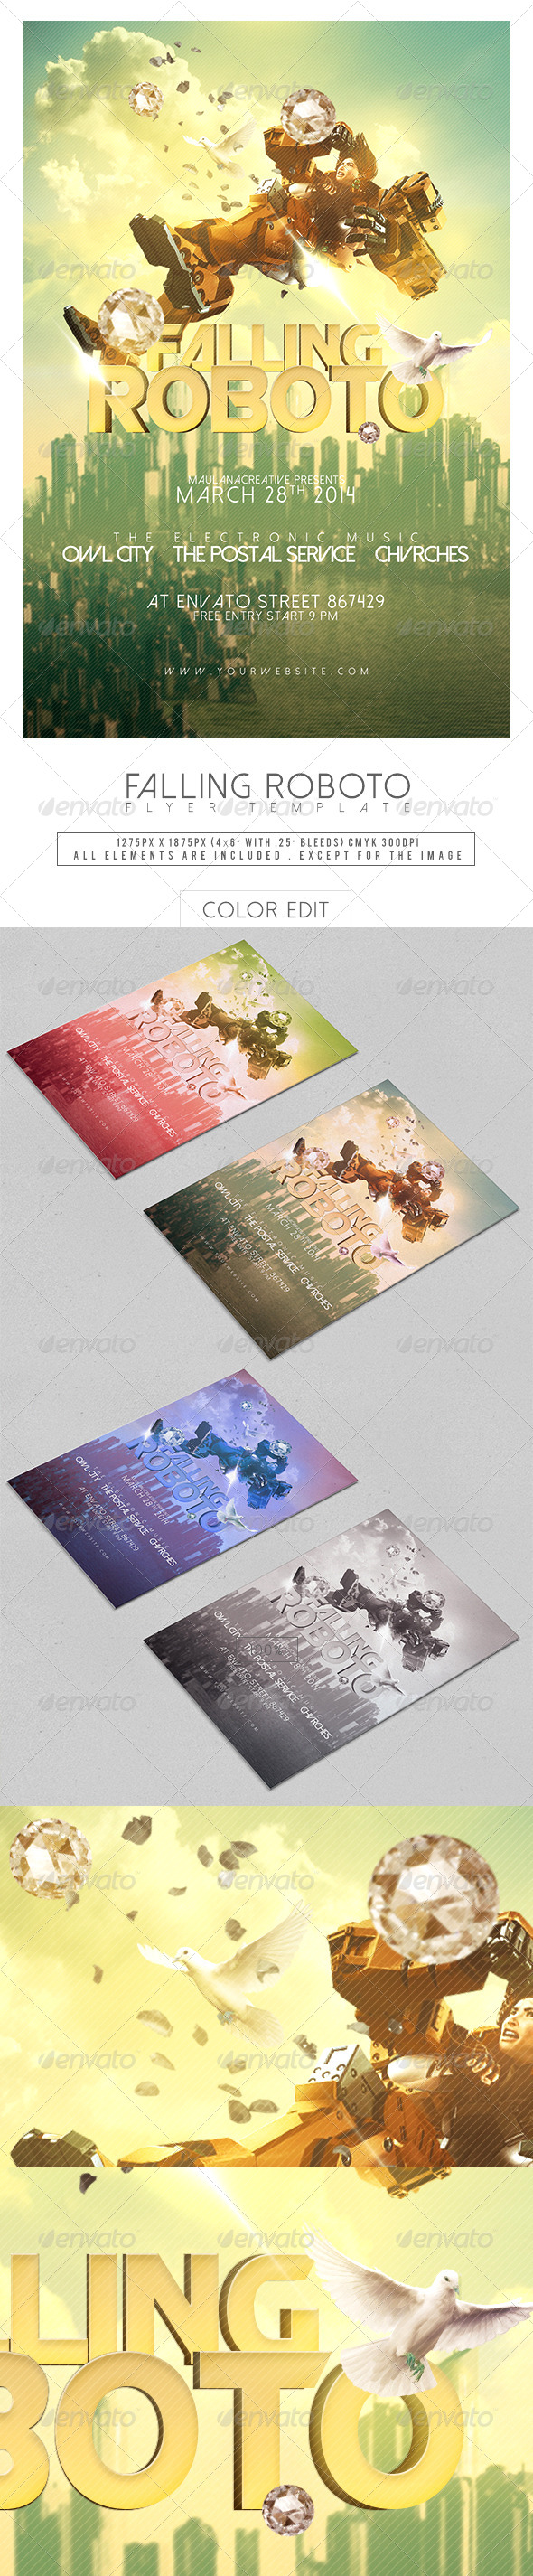 Falling Roboto Flyer Template - Concerts Events